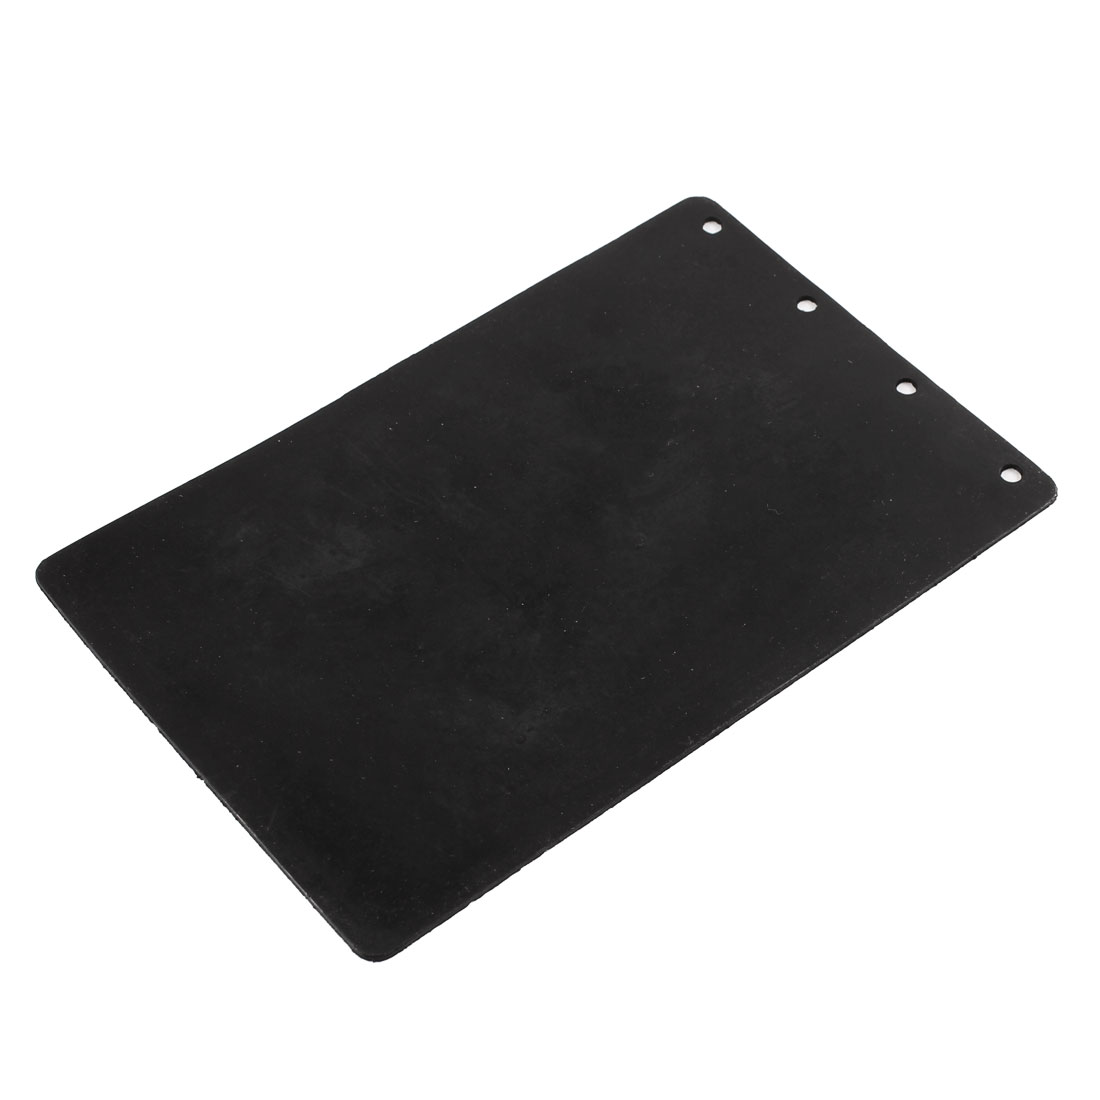 Rubber Base Plate Pad Backing Sheet 170 x 110mm for Makita 9403 Belt Sander